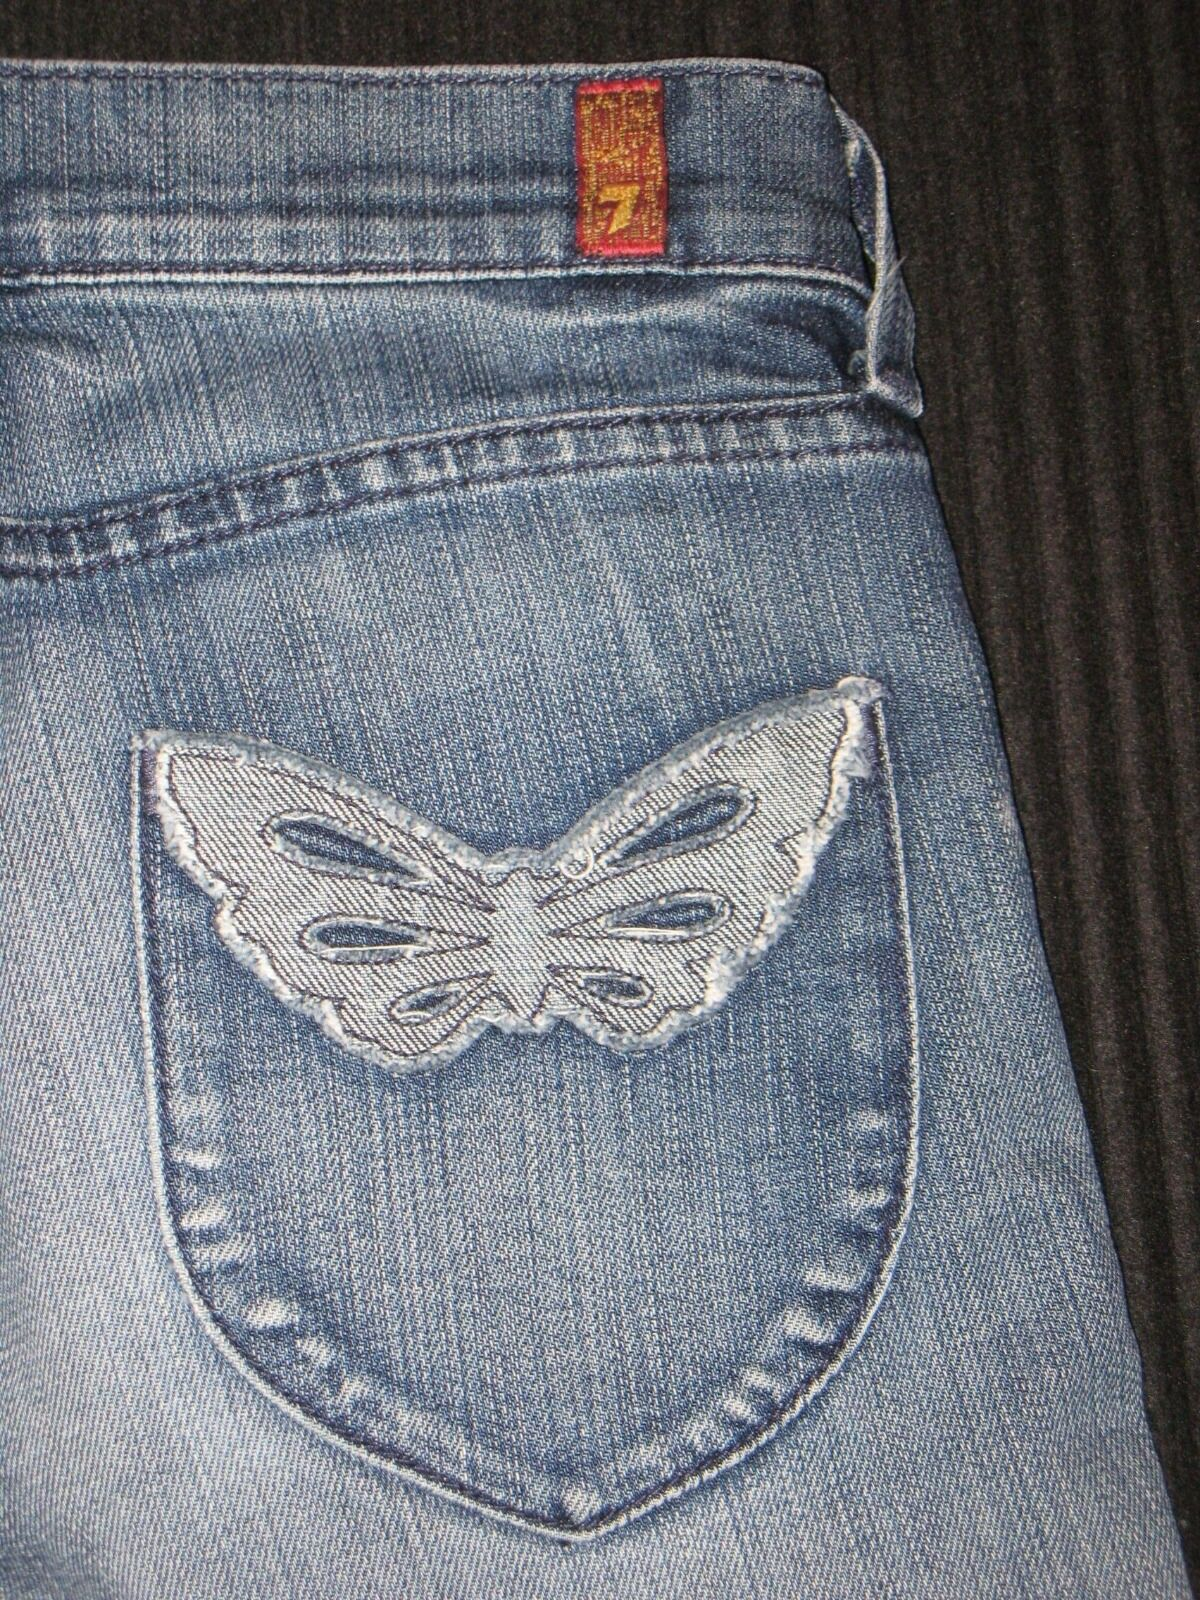 7 For All Mankind Straight Jeans Sz 25 Nolita Butterfly Pocs Distressed Wash